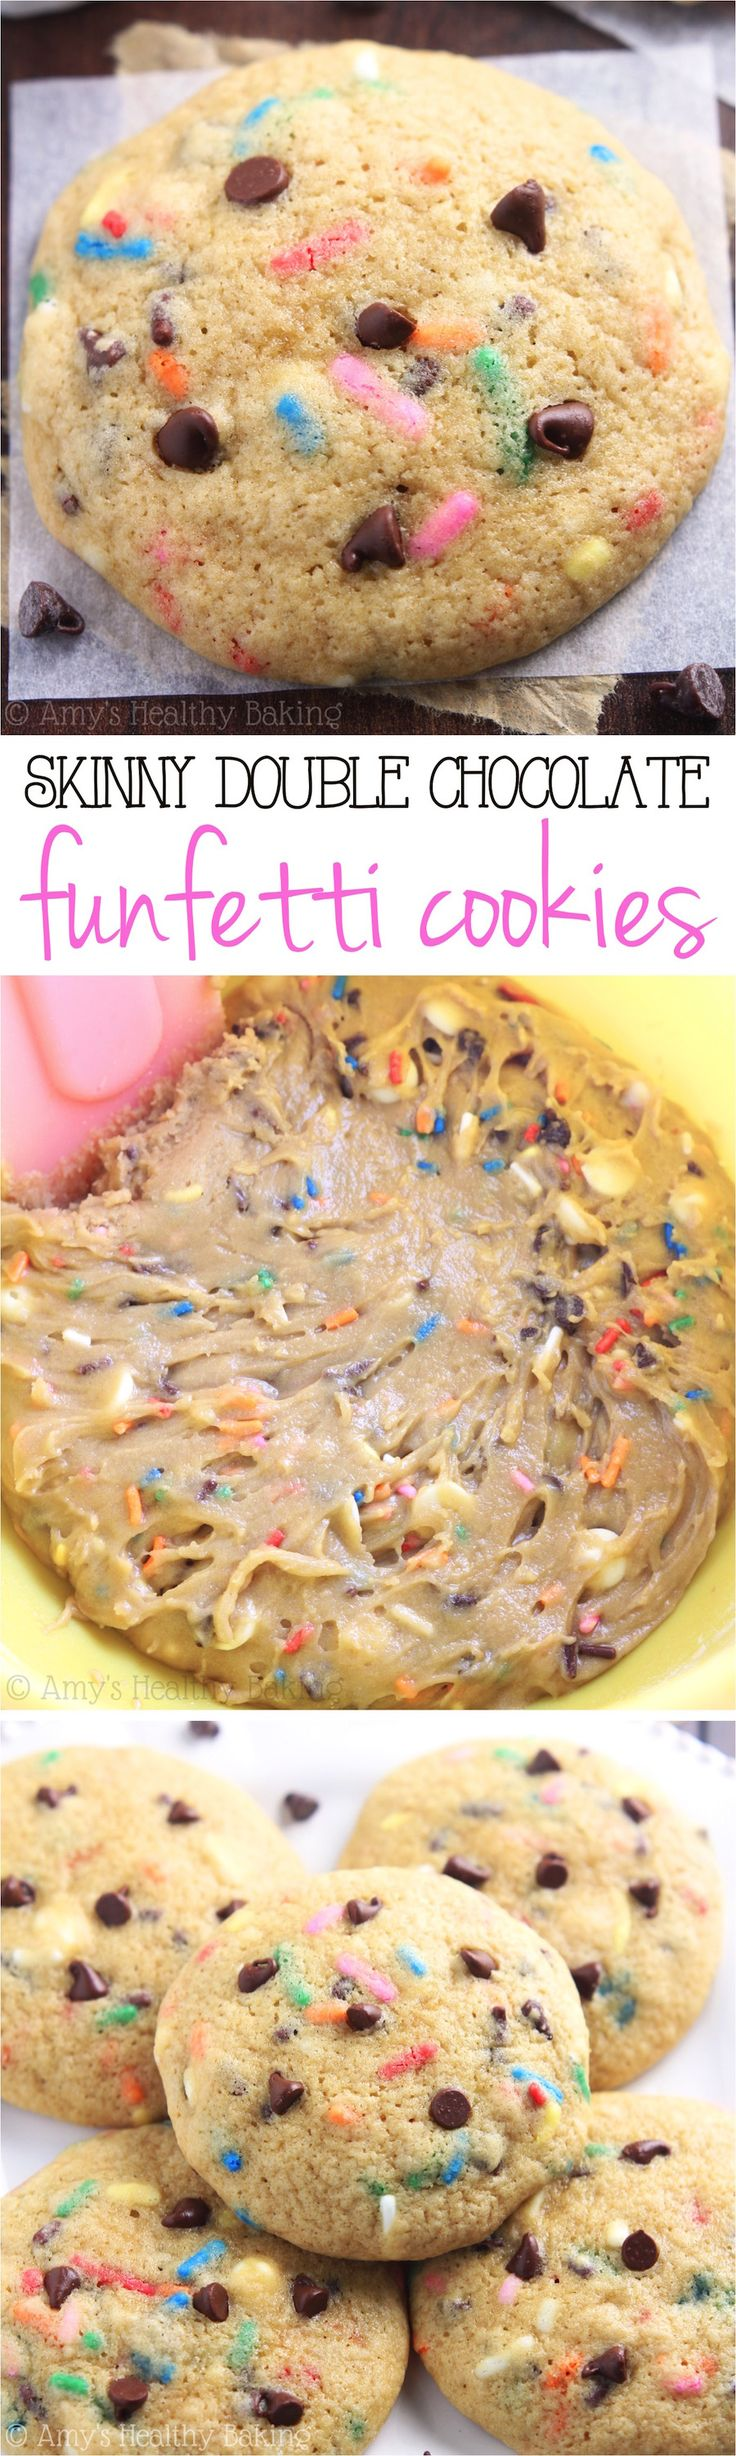 Chewy Double Chocolate Funfetti Cookies -- these skinny cookies don't taste healthy at all! You'll never need another funfetti cookie recipe again!